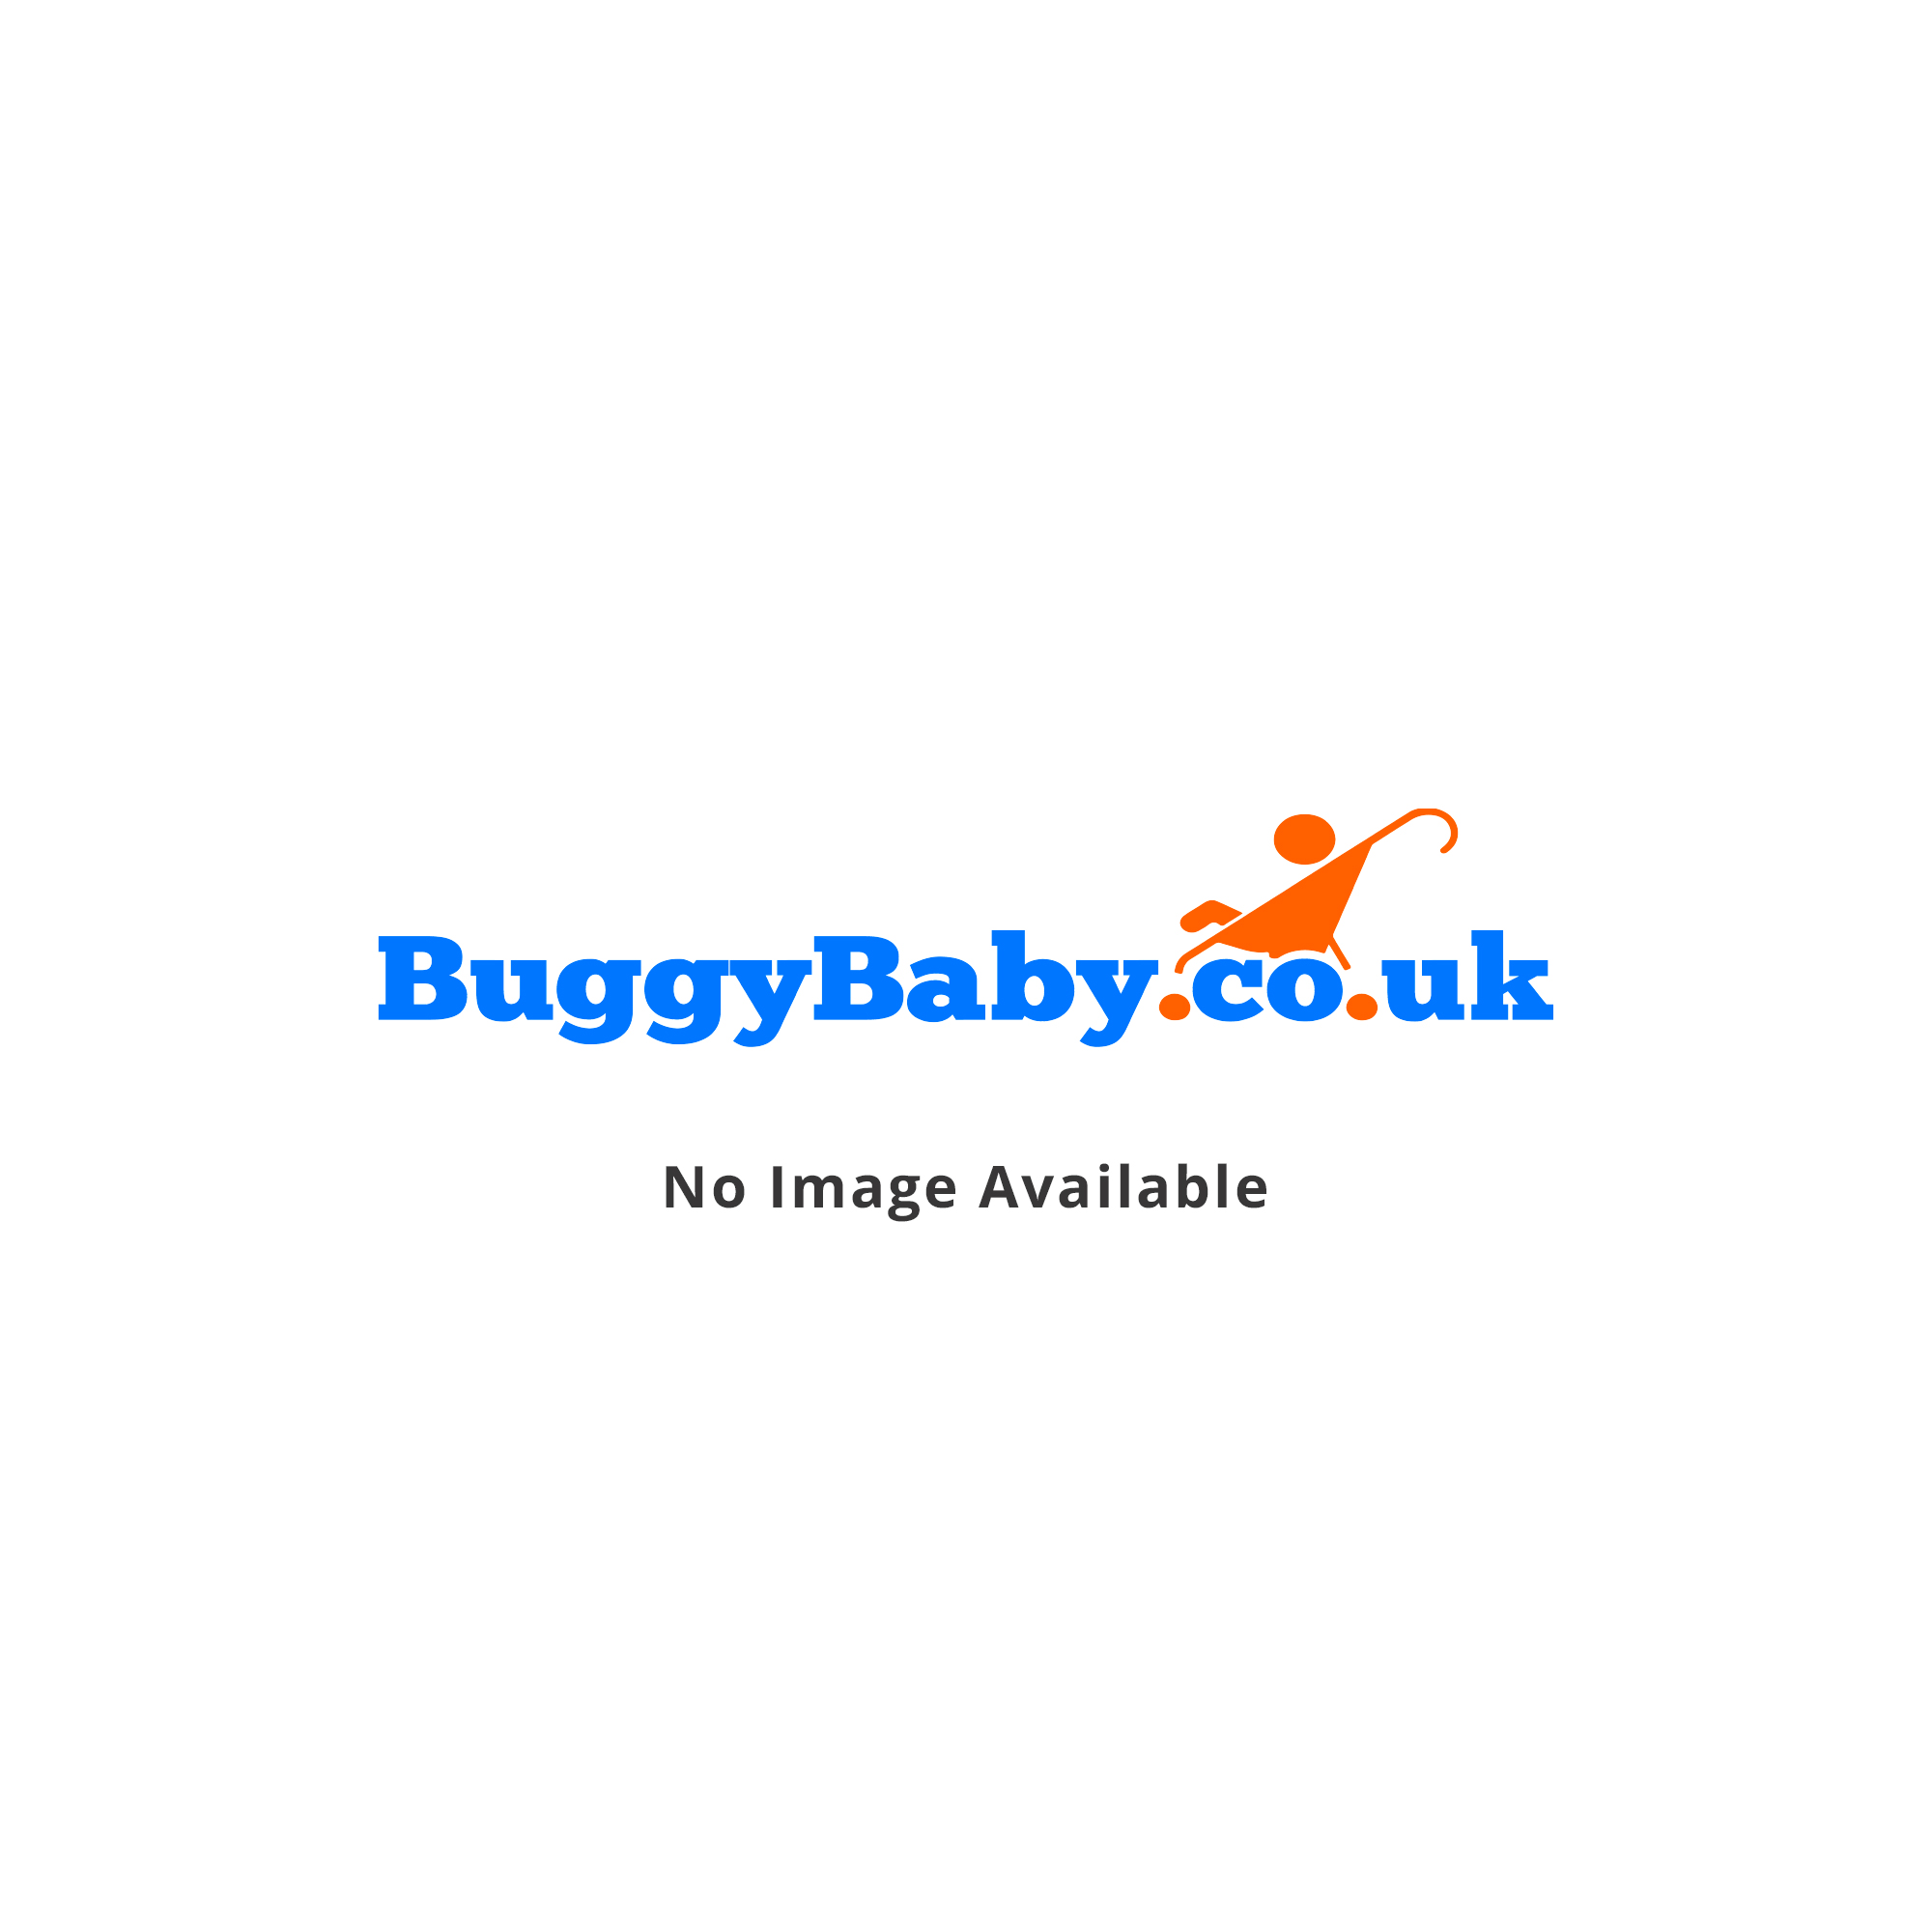 How To Secure Maxi Cosi Car Seat